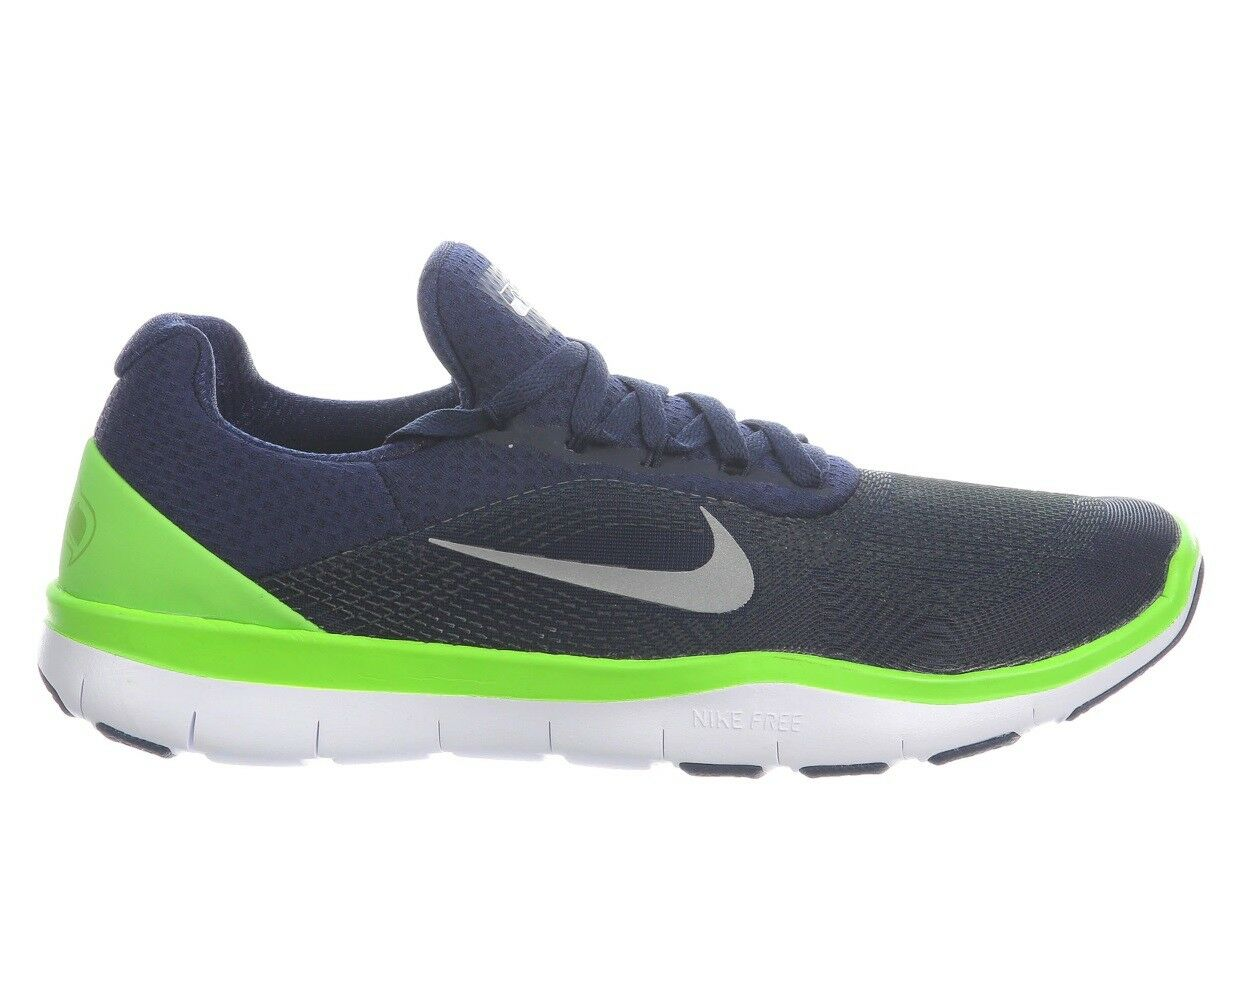 Nike Free Trainer V7 Seahawks Mens AA1948-400 Navy Green Training Shoes Size 11